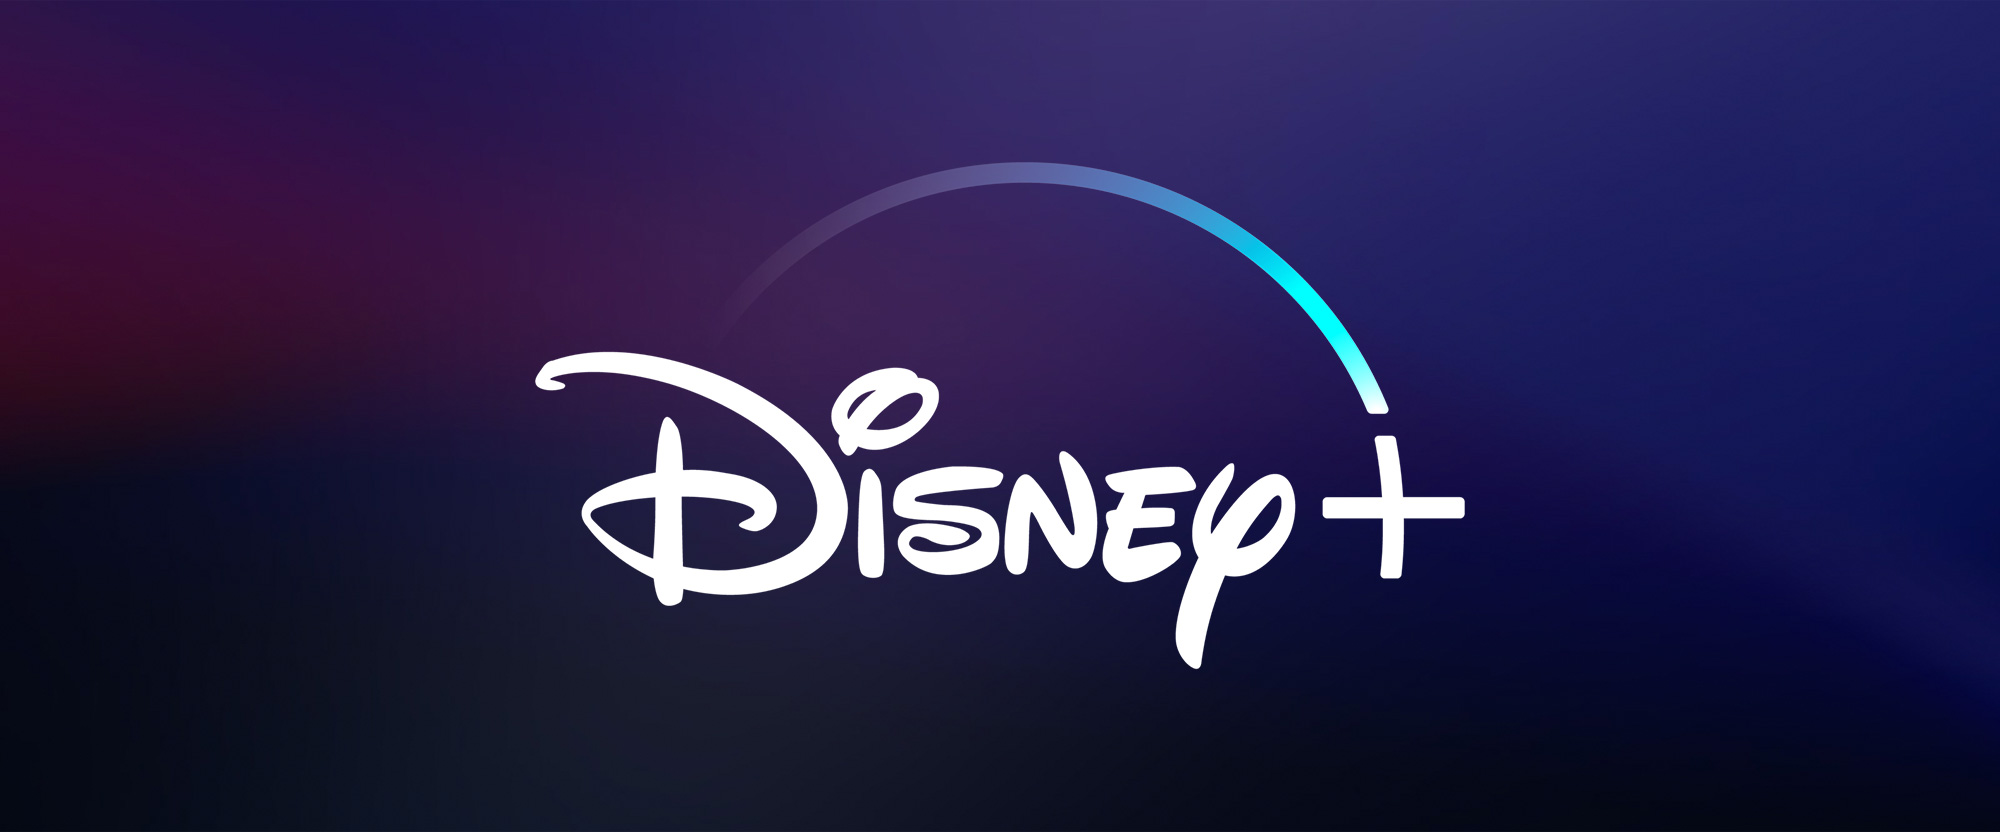 New Name and Logo for Disney+